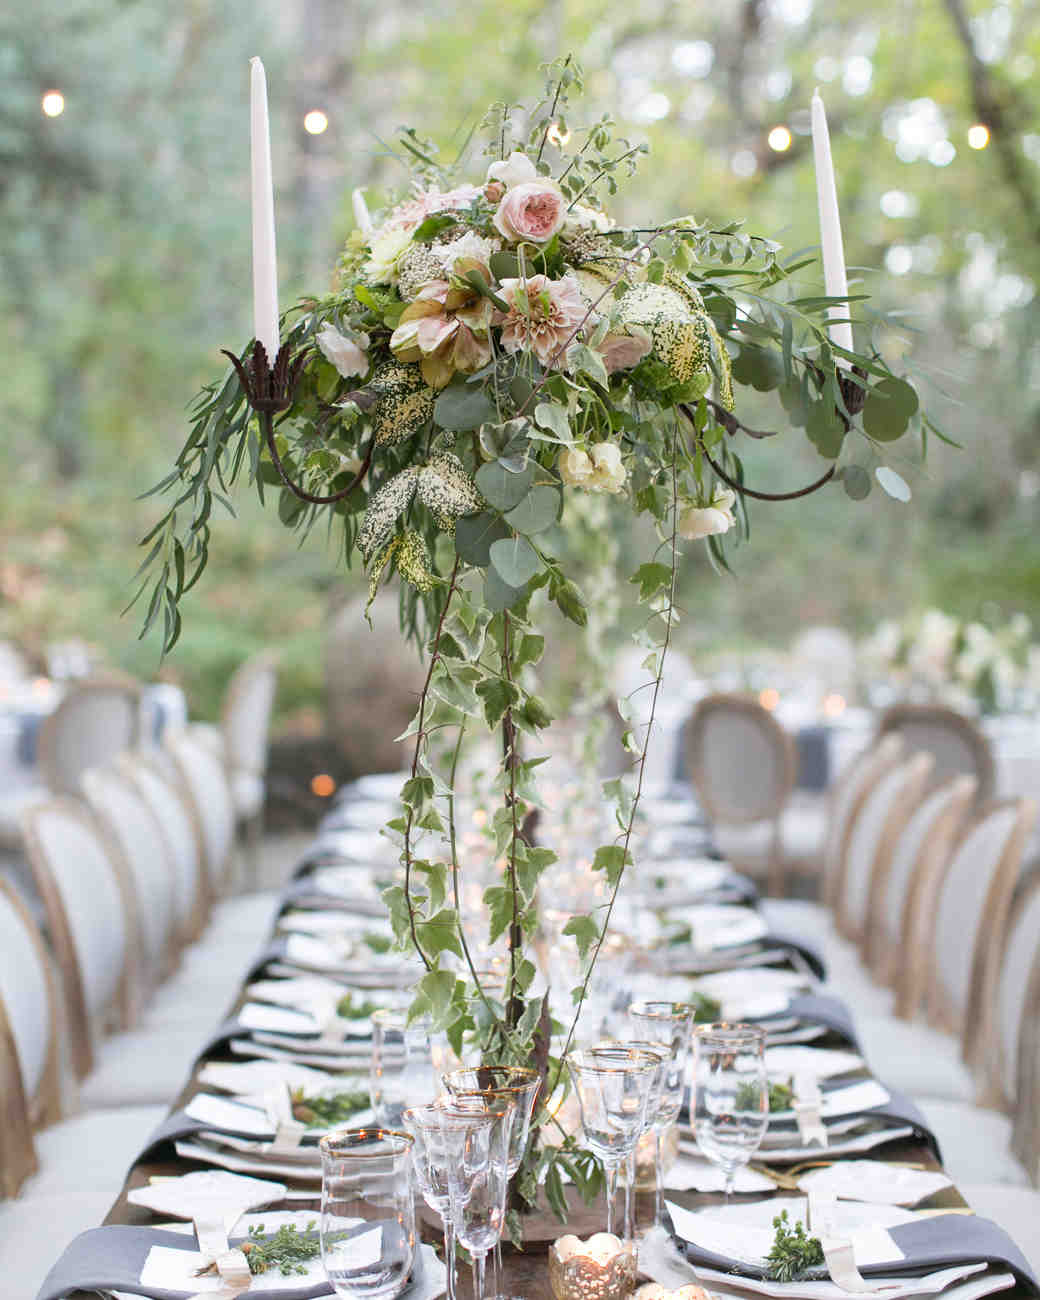 Country Wedding Centerpieces Ideas: 75 Great Wedding Centerpieces